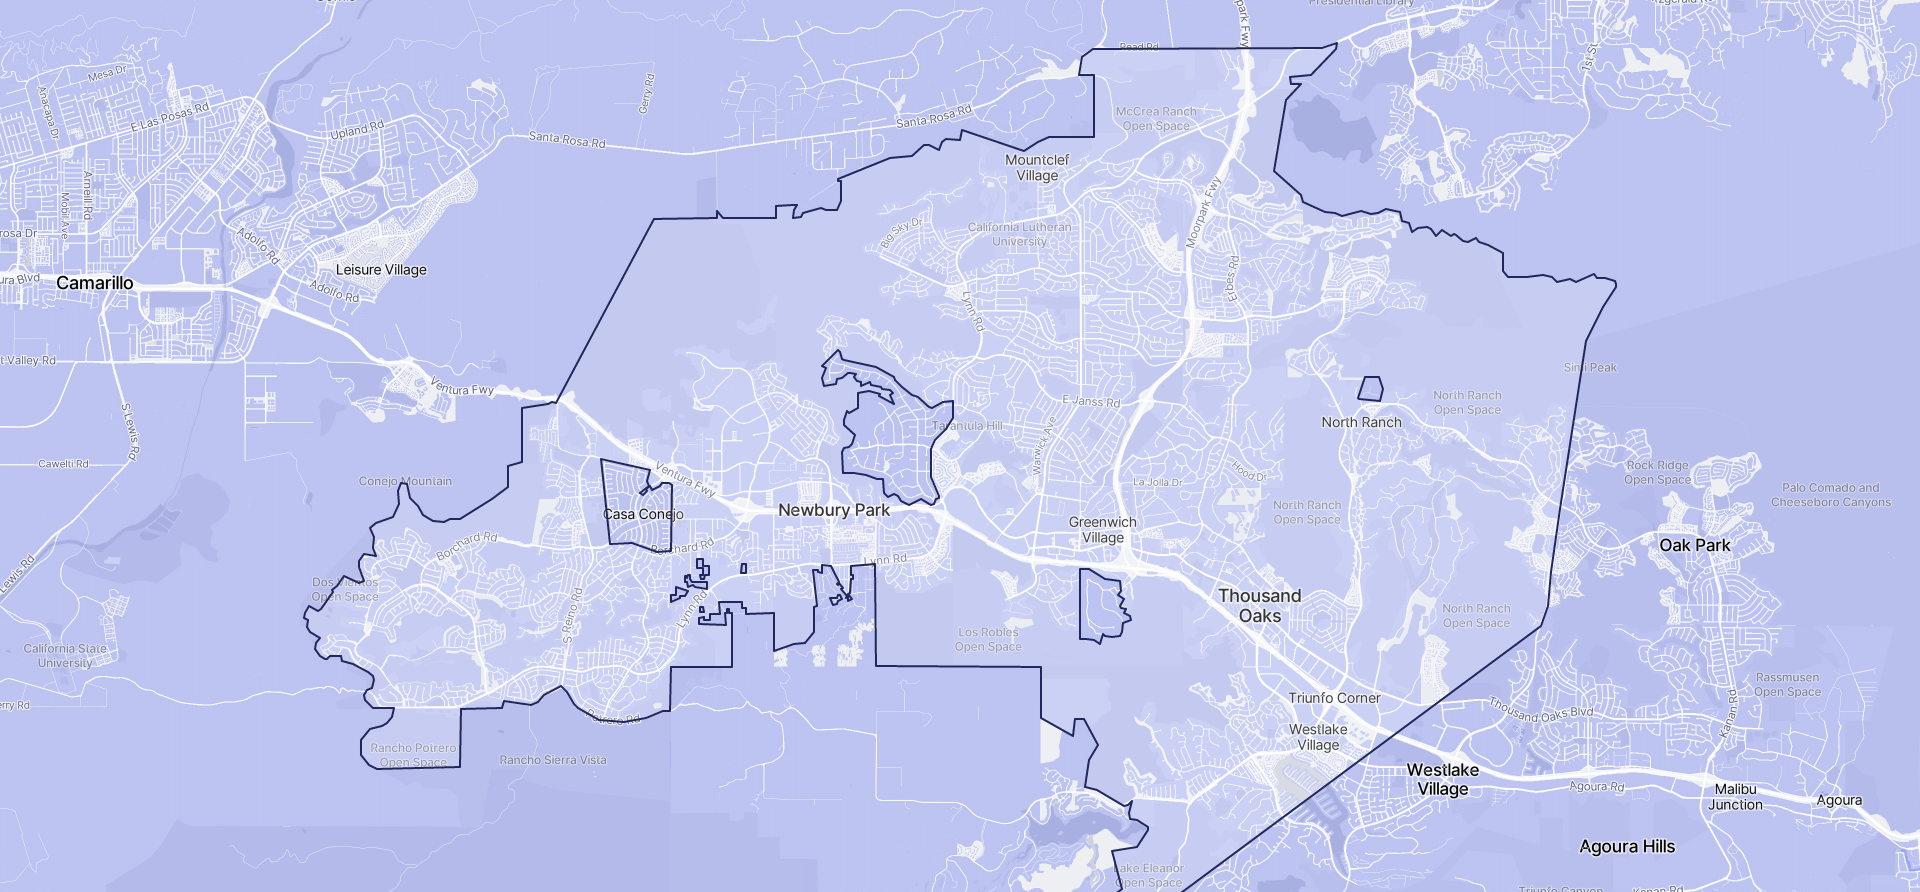 Image of Thousand Oaks boundaries on a map.